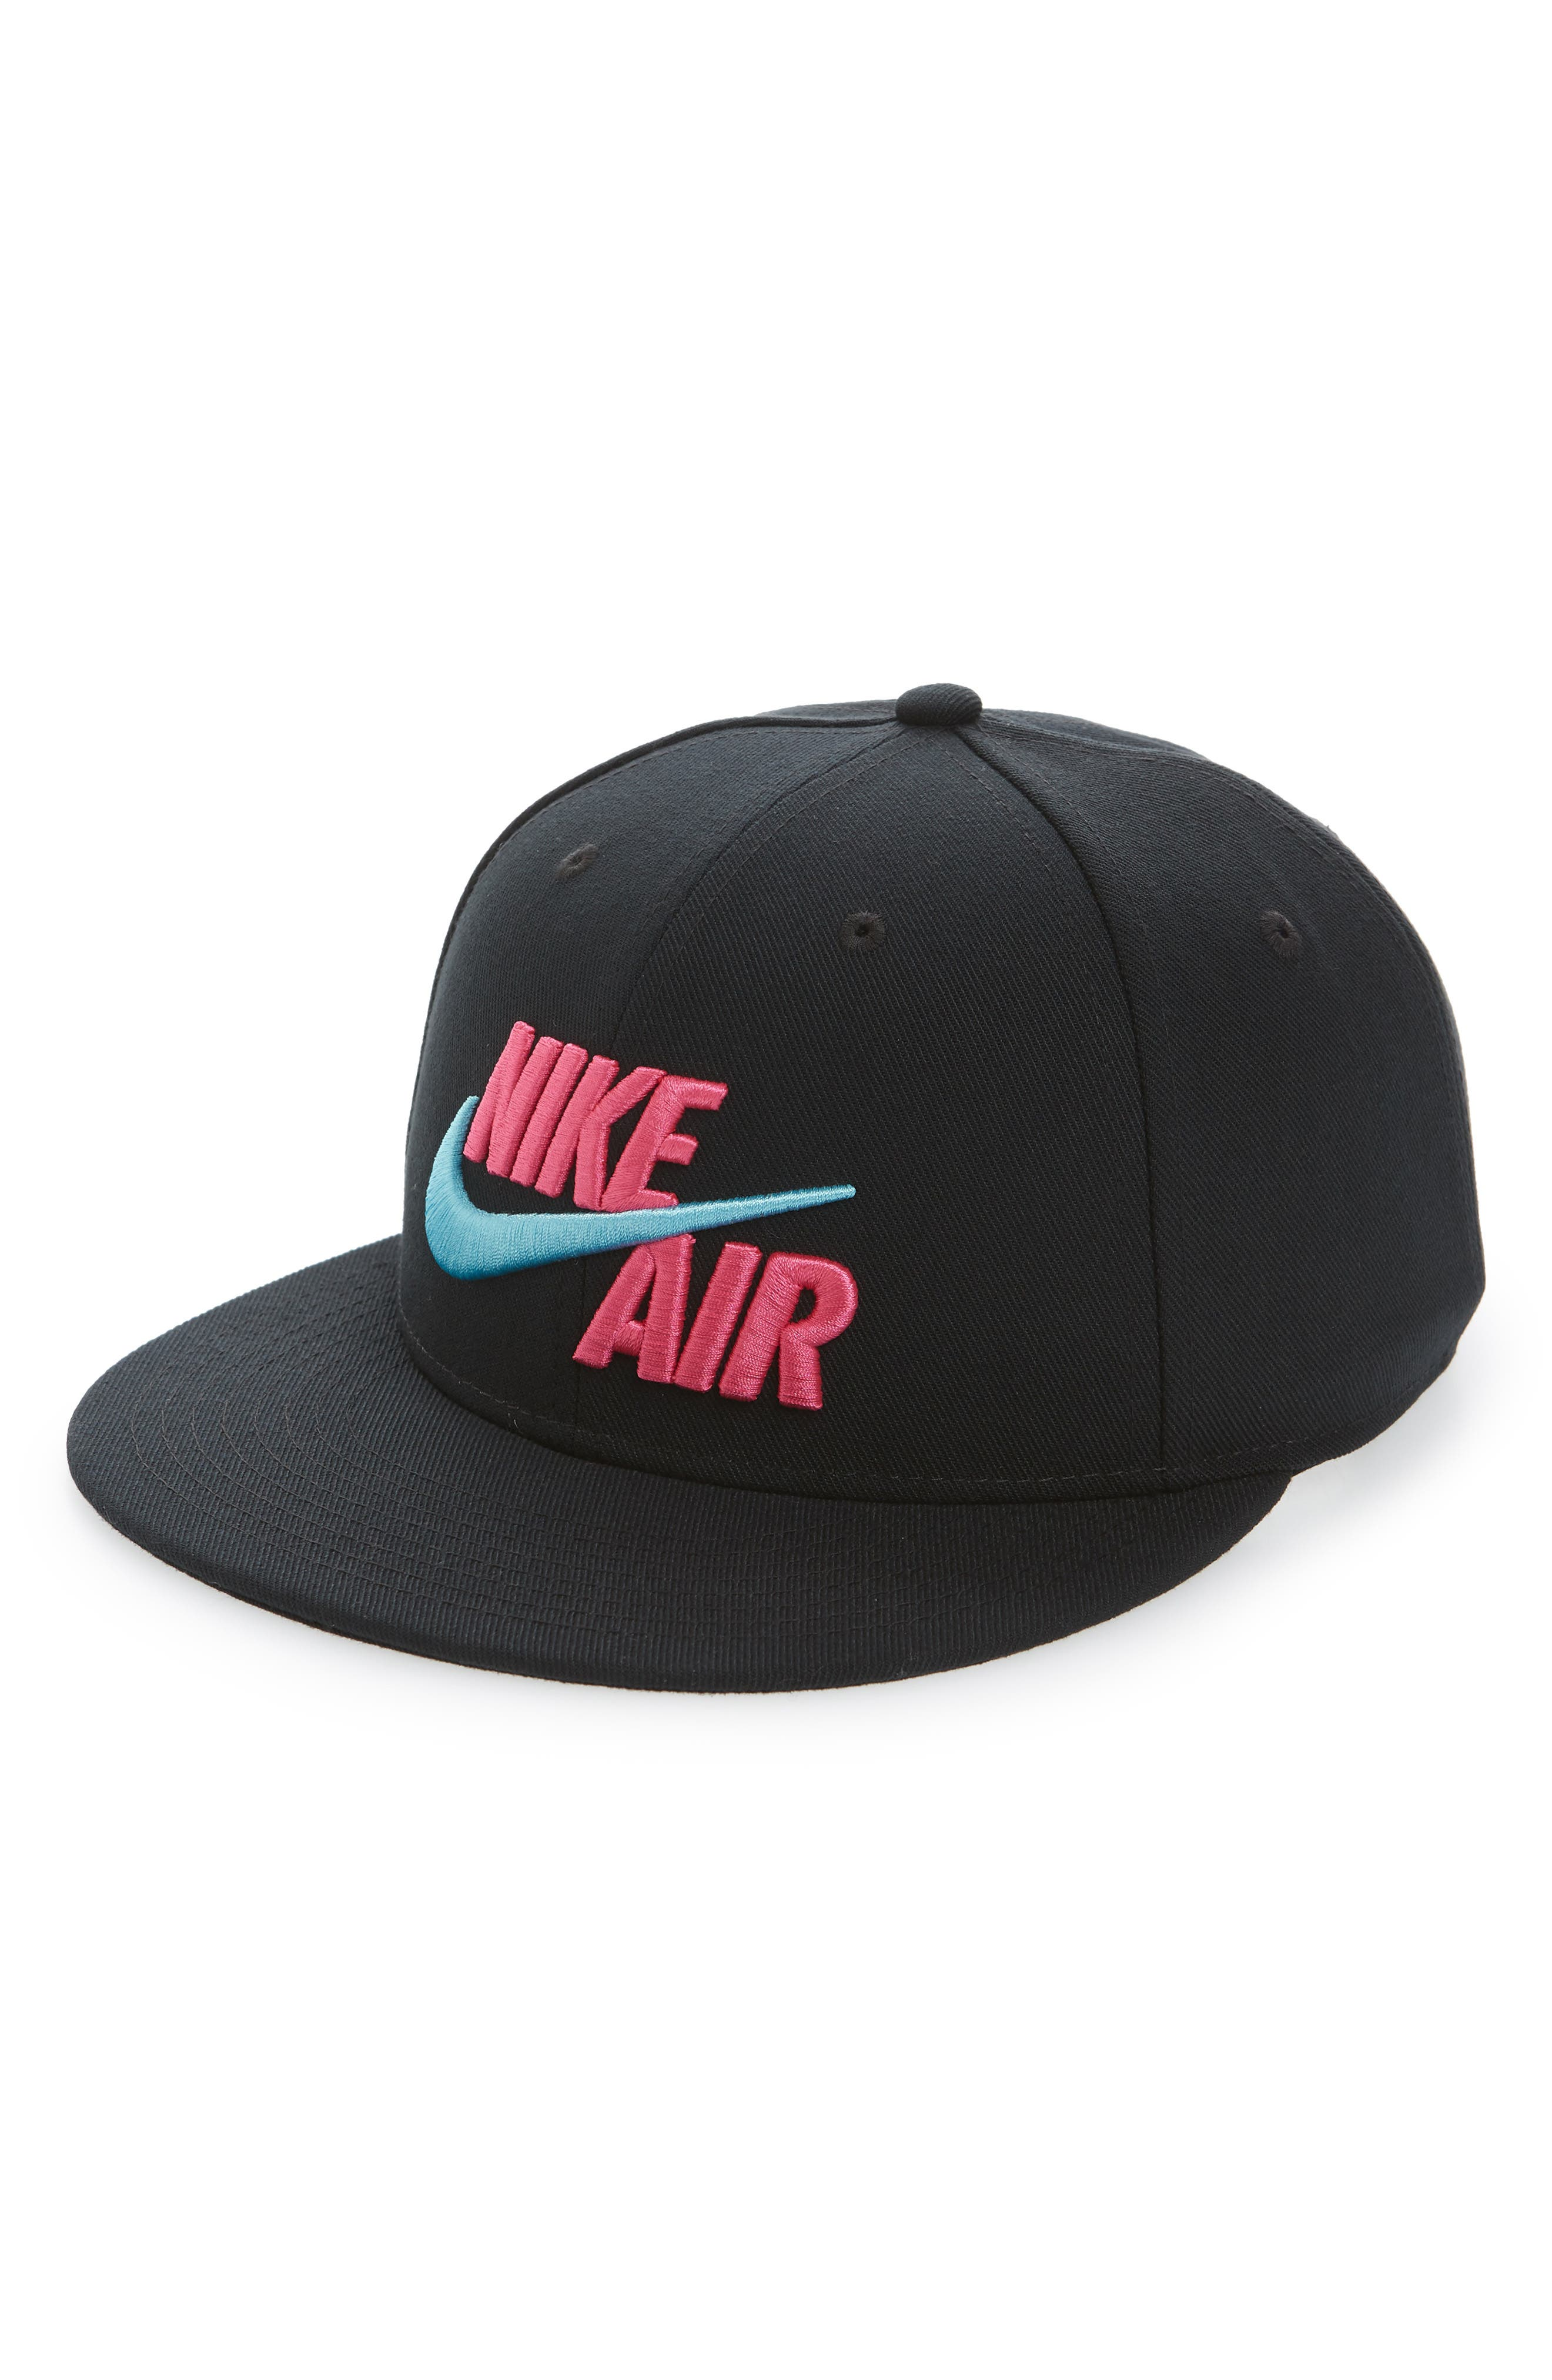 NIKE Air True Snapback Baseball Cap, Main, color, BLACK/ LASER FUCHSIA